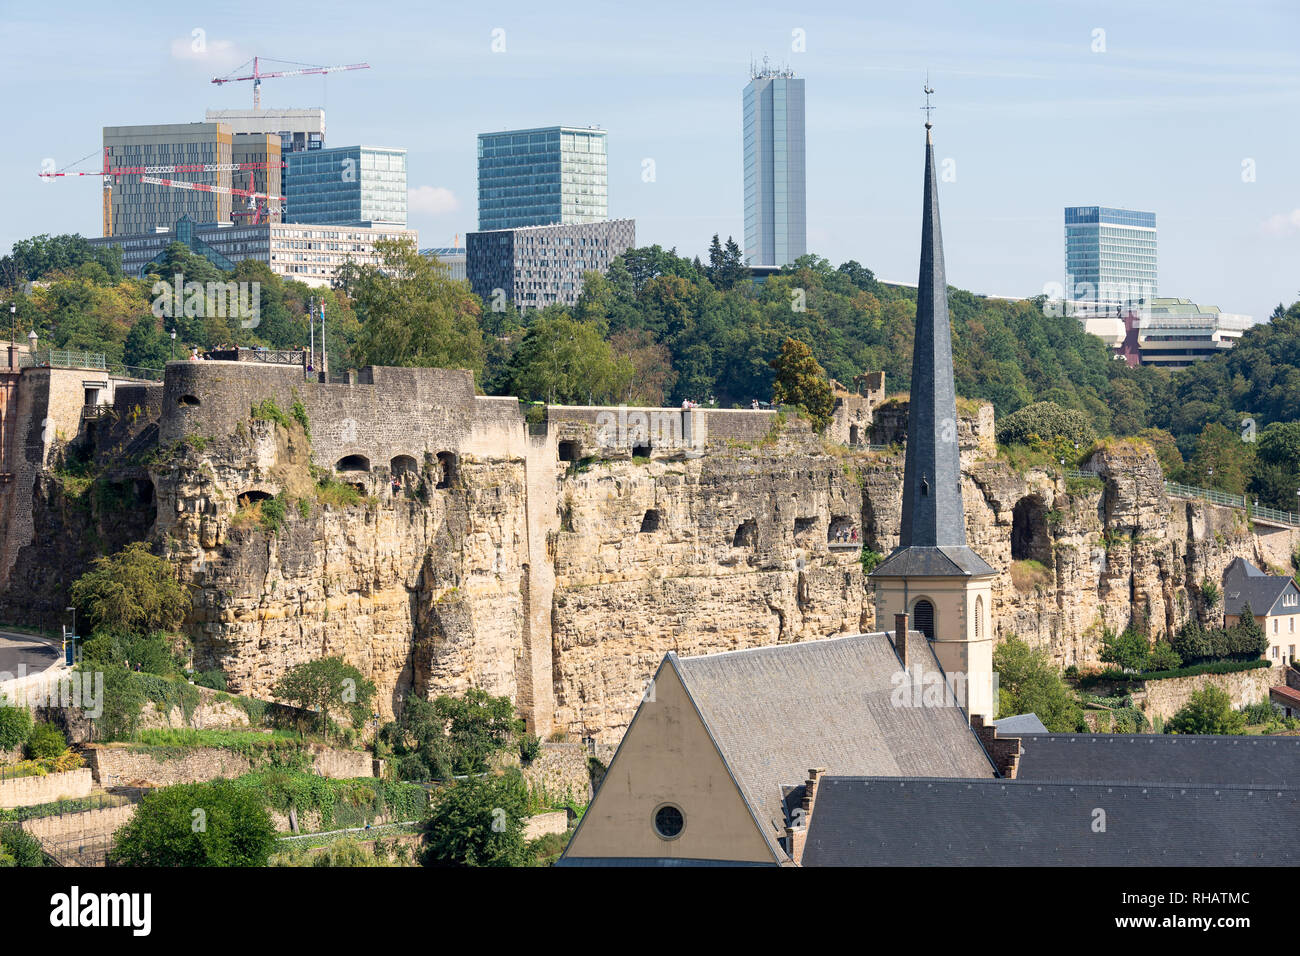 Luxembourg city, aerial view of the Old Town and Grund - Stock Image